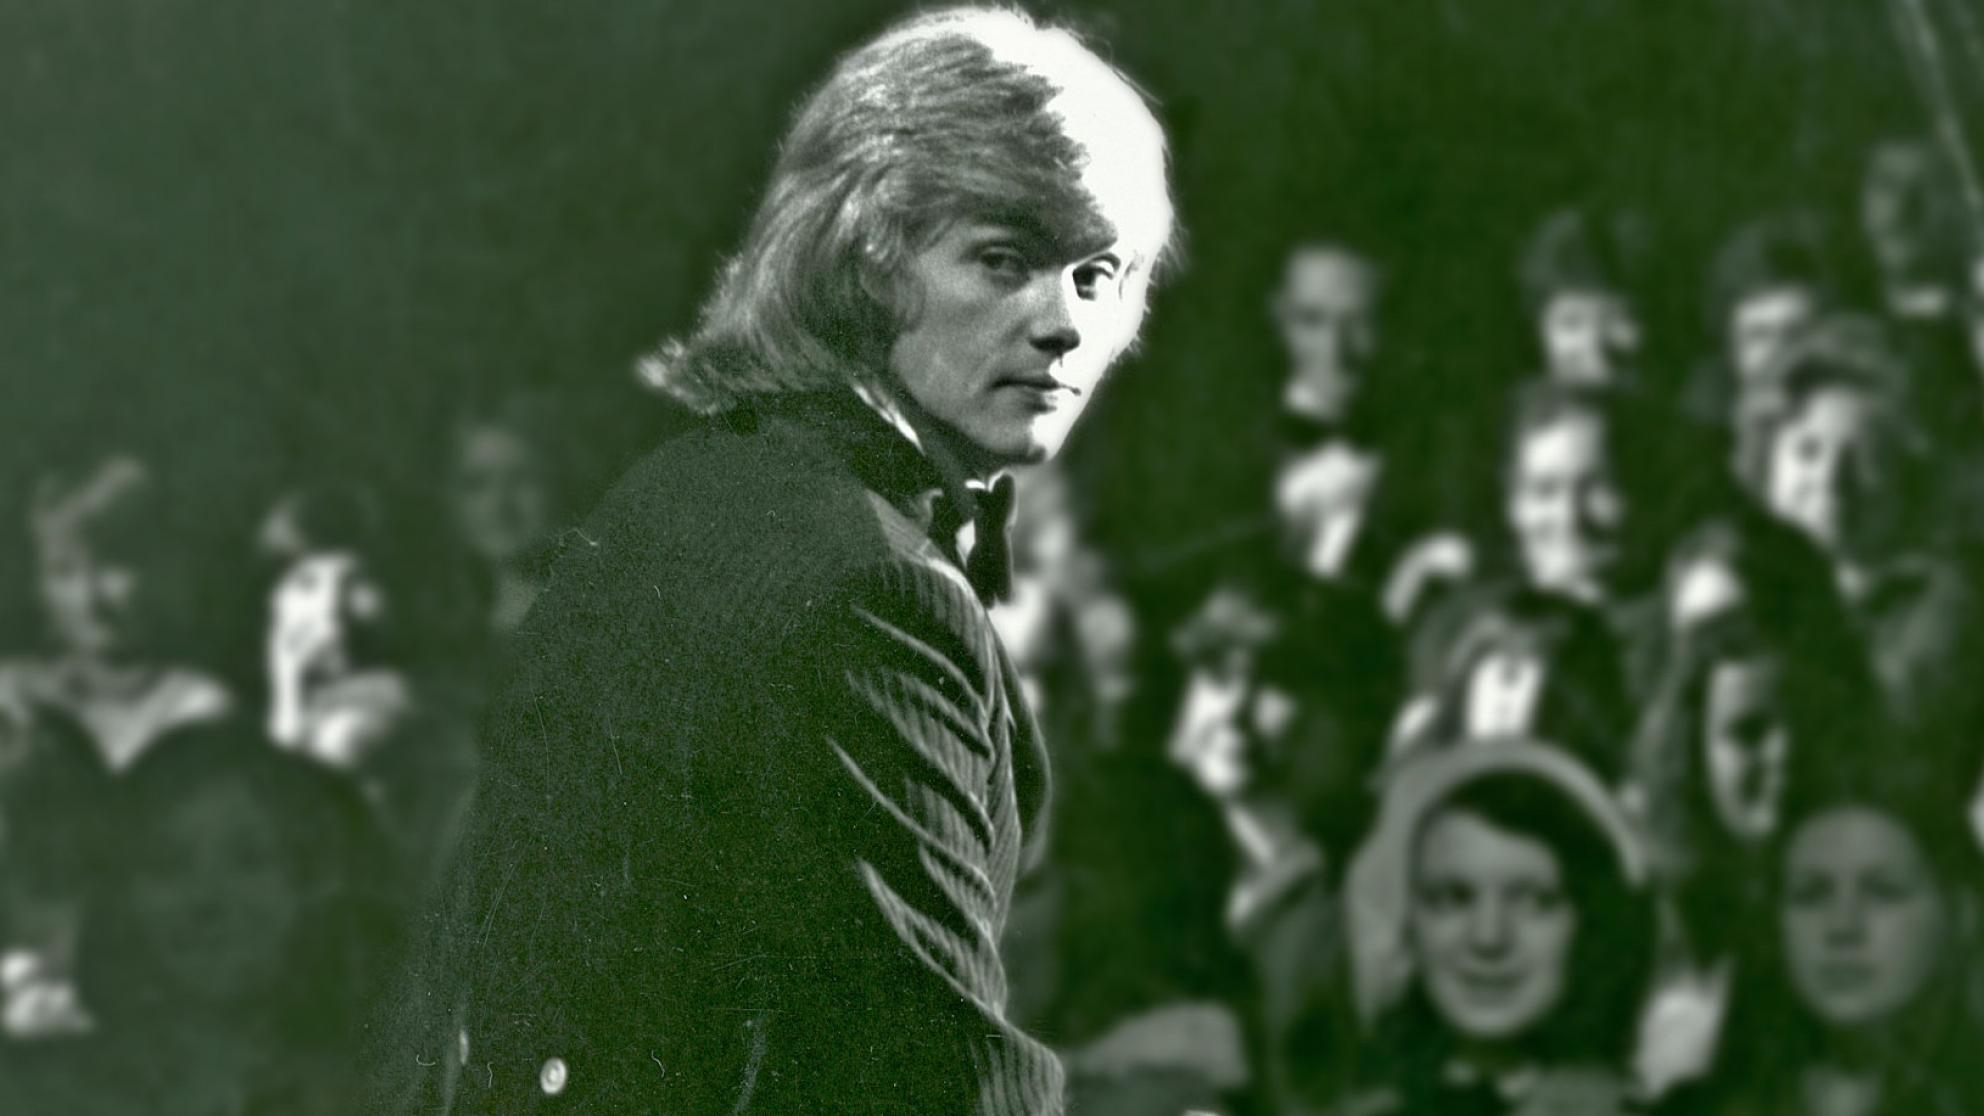 John Farnham sitting on stage in front of an audience, looking back over his right shoulder at the camer.